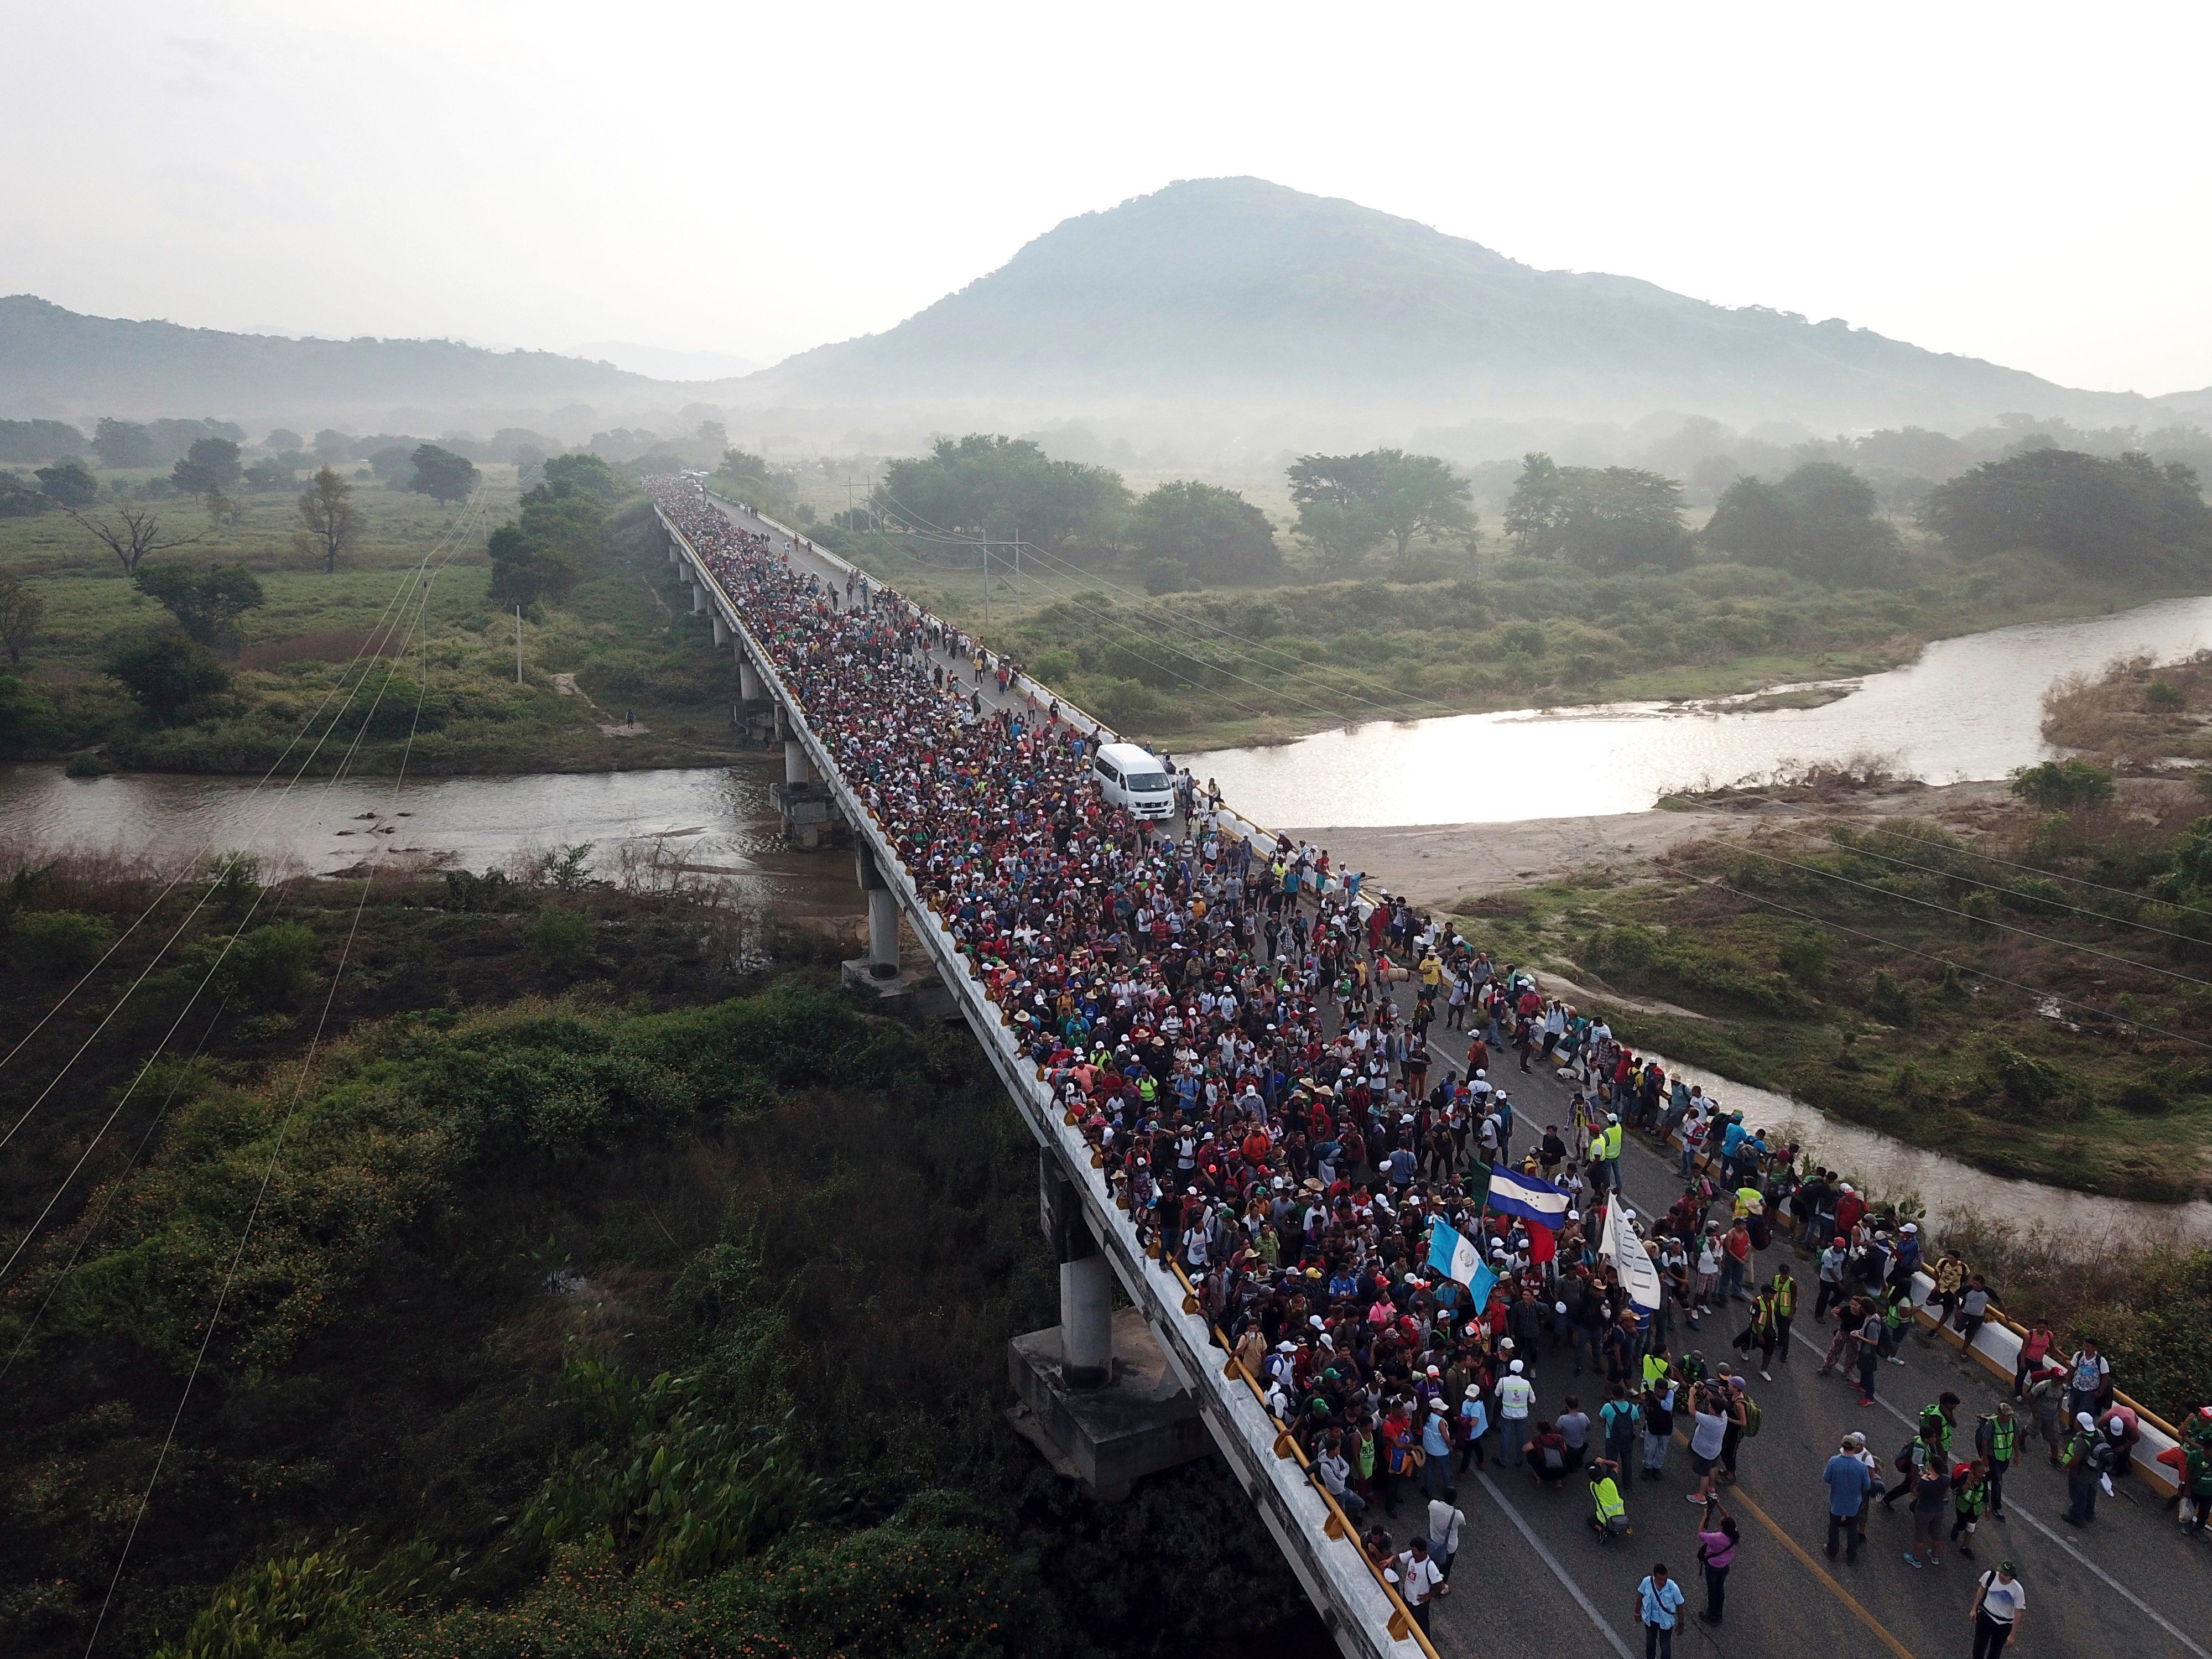 Members of a US-bound migrant caravan cross a bridge between the Mexican states of Chiapas and Oaxaca after federal police briefly blocked them outside the town of Arriaga on Oct. 27, 2018.